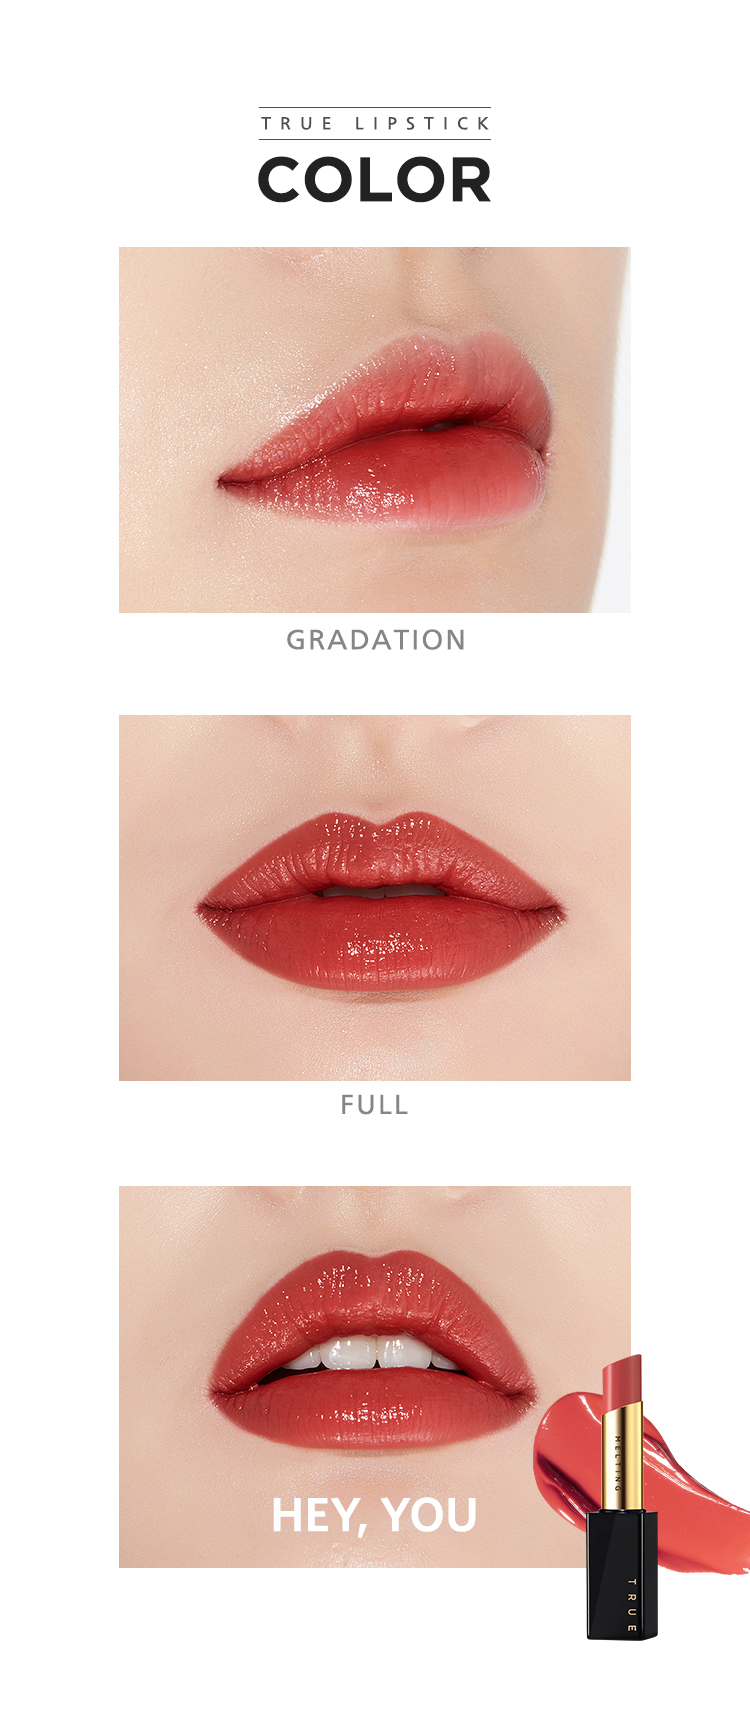 APIEU_True_Melting_Lipstick_bf_CR04_02.jpg